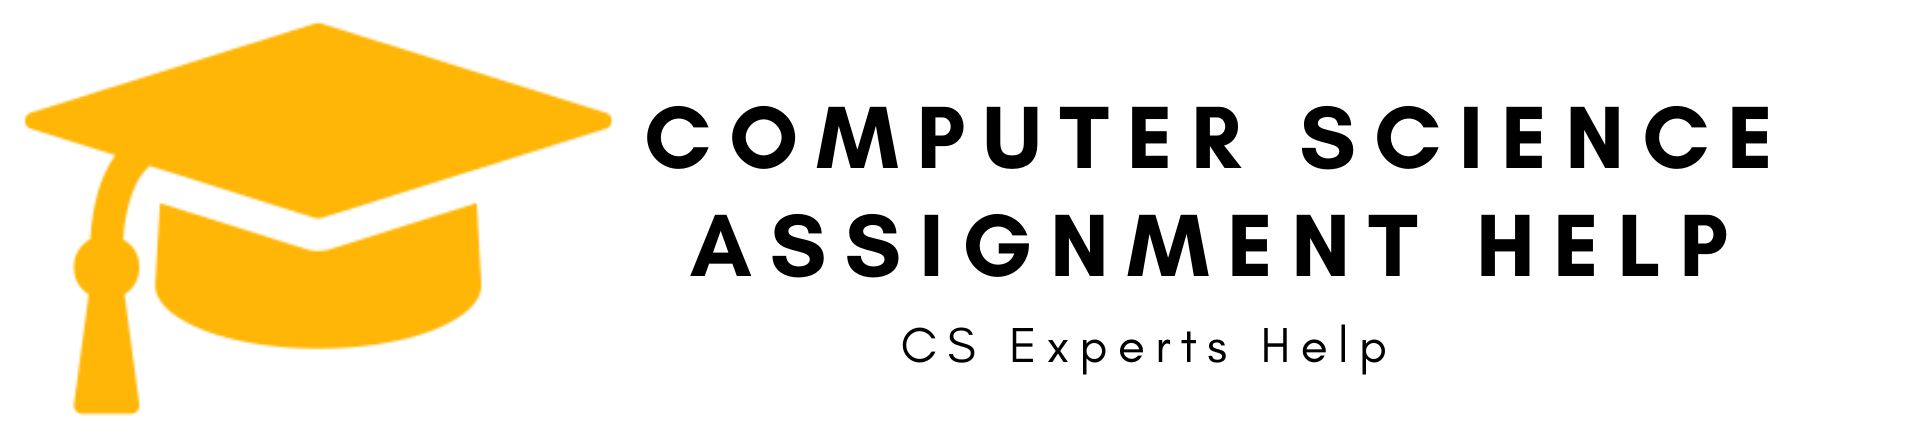 Computer Science Assignment Help | Computer Engineering Homework Help By Expert Programmers